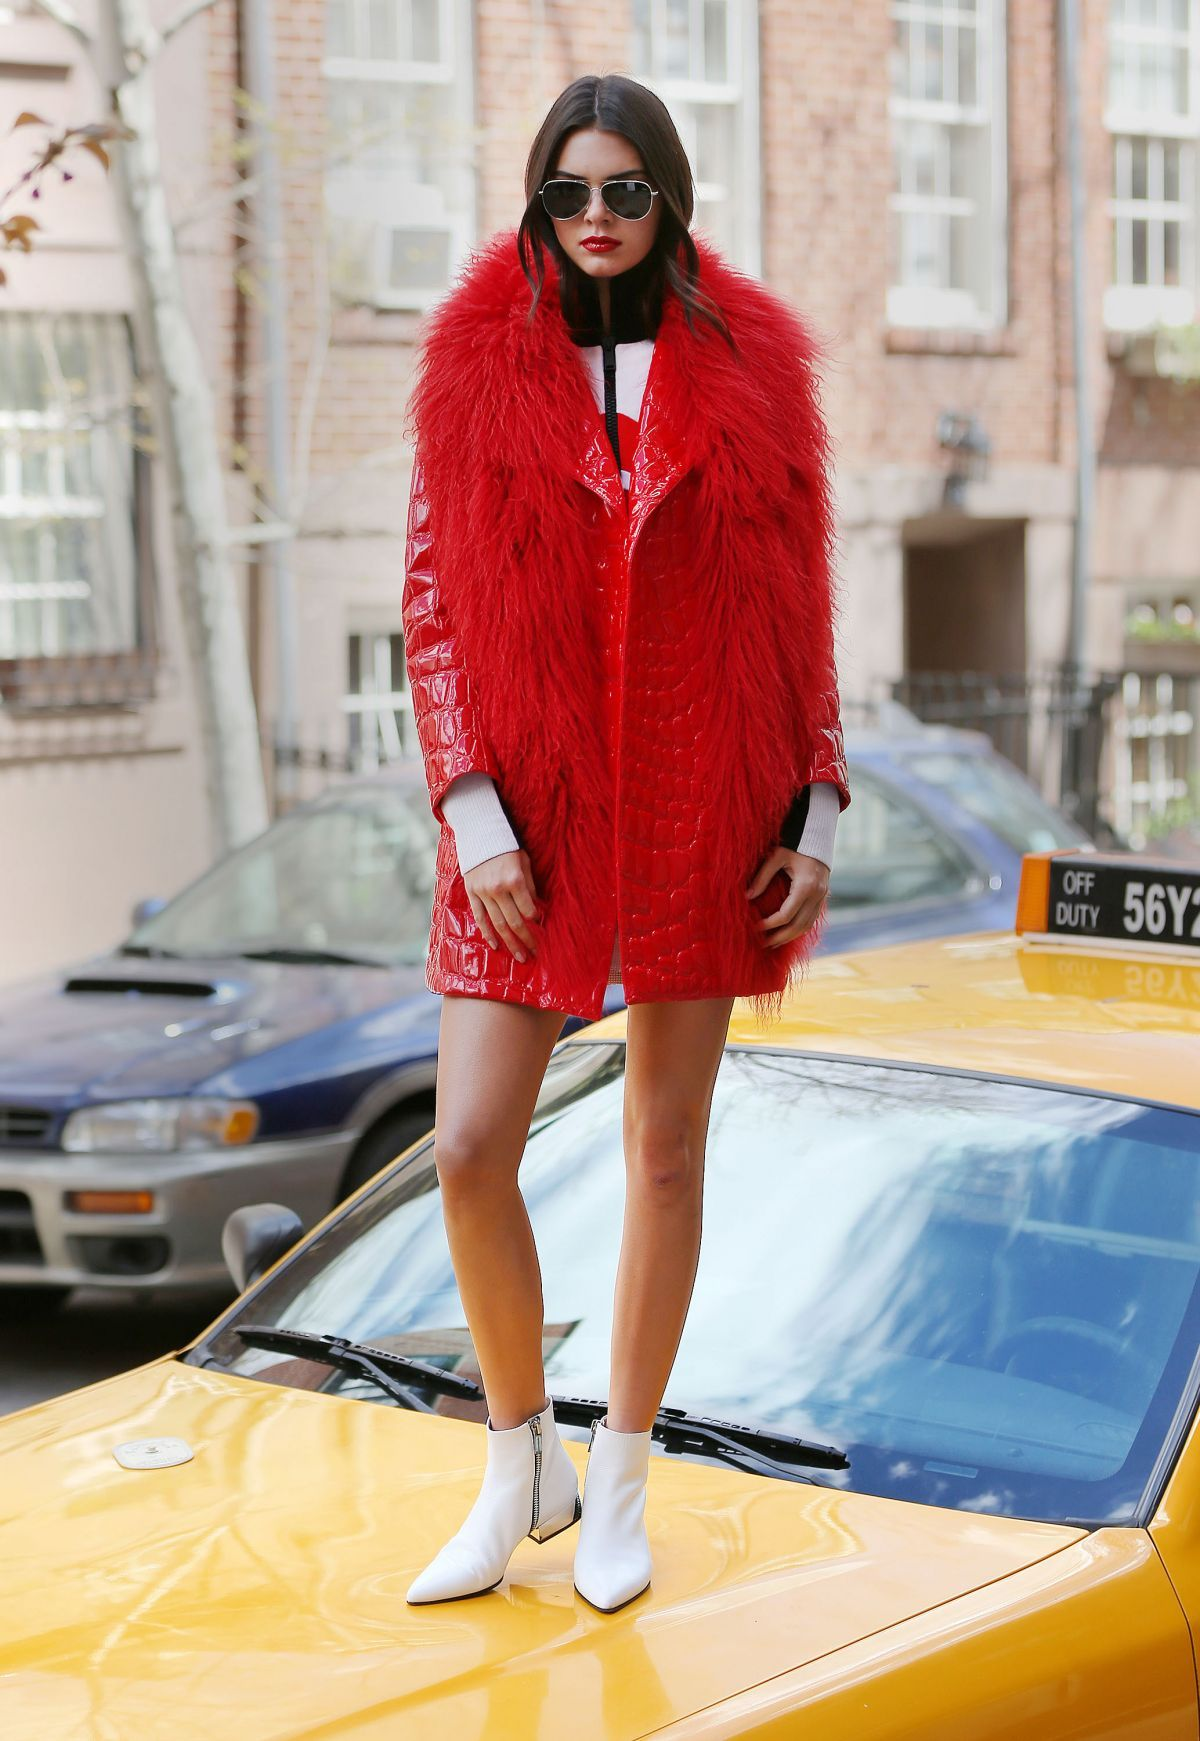 Kendall Jenner red leather and fur trimmed coat